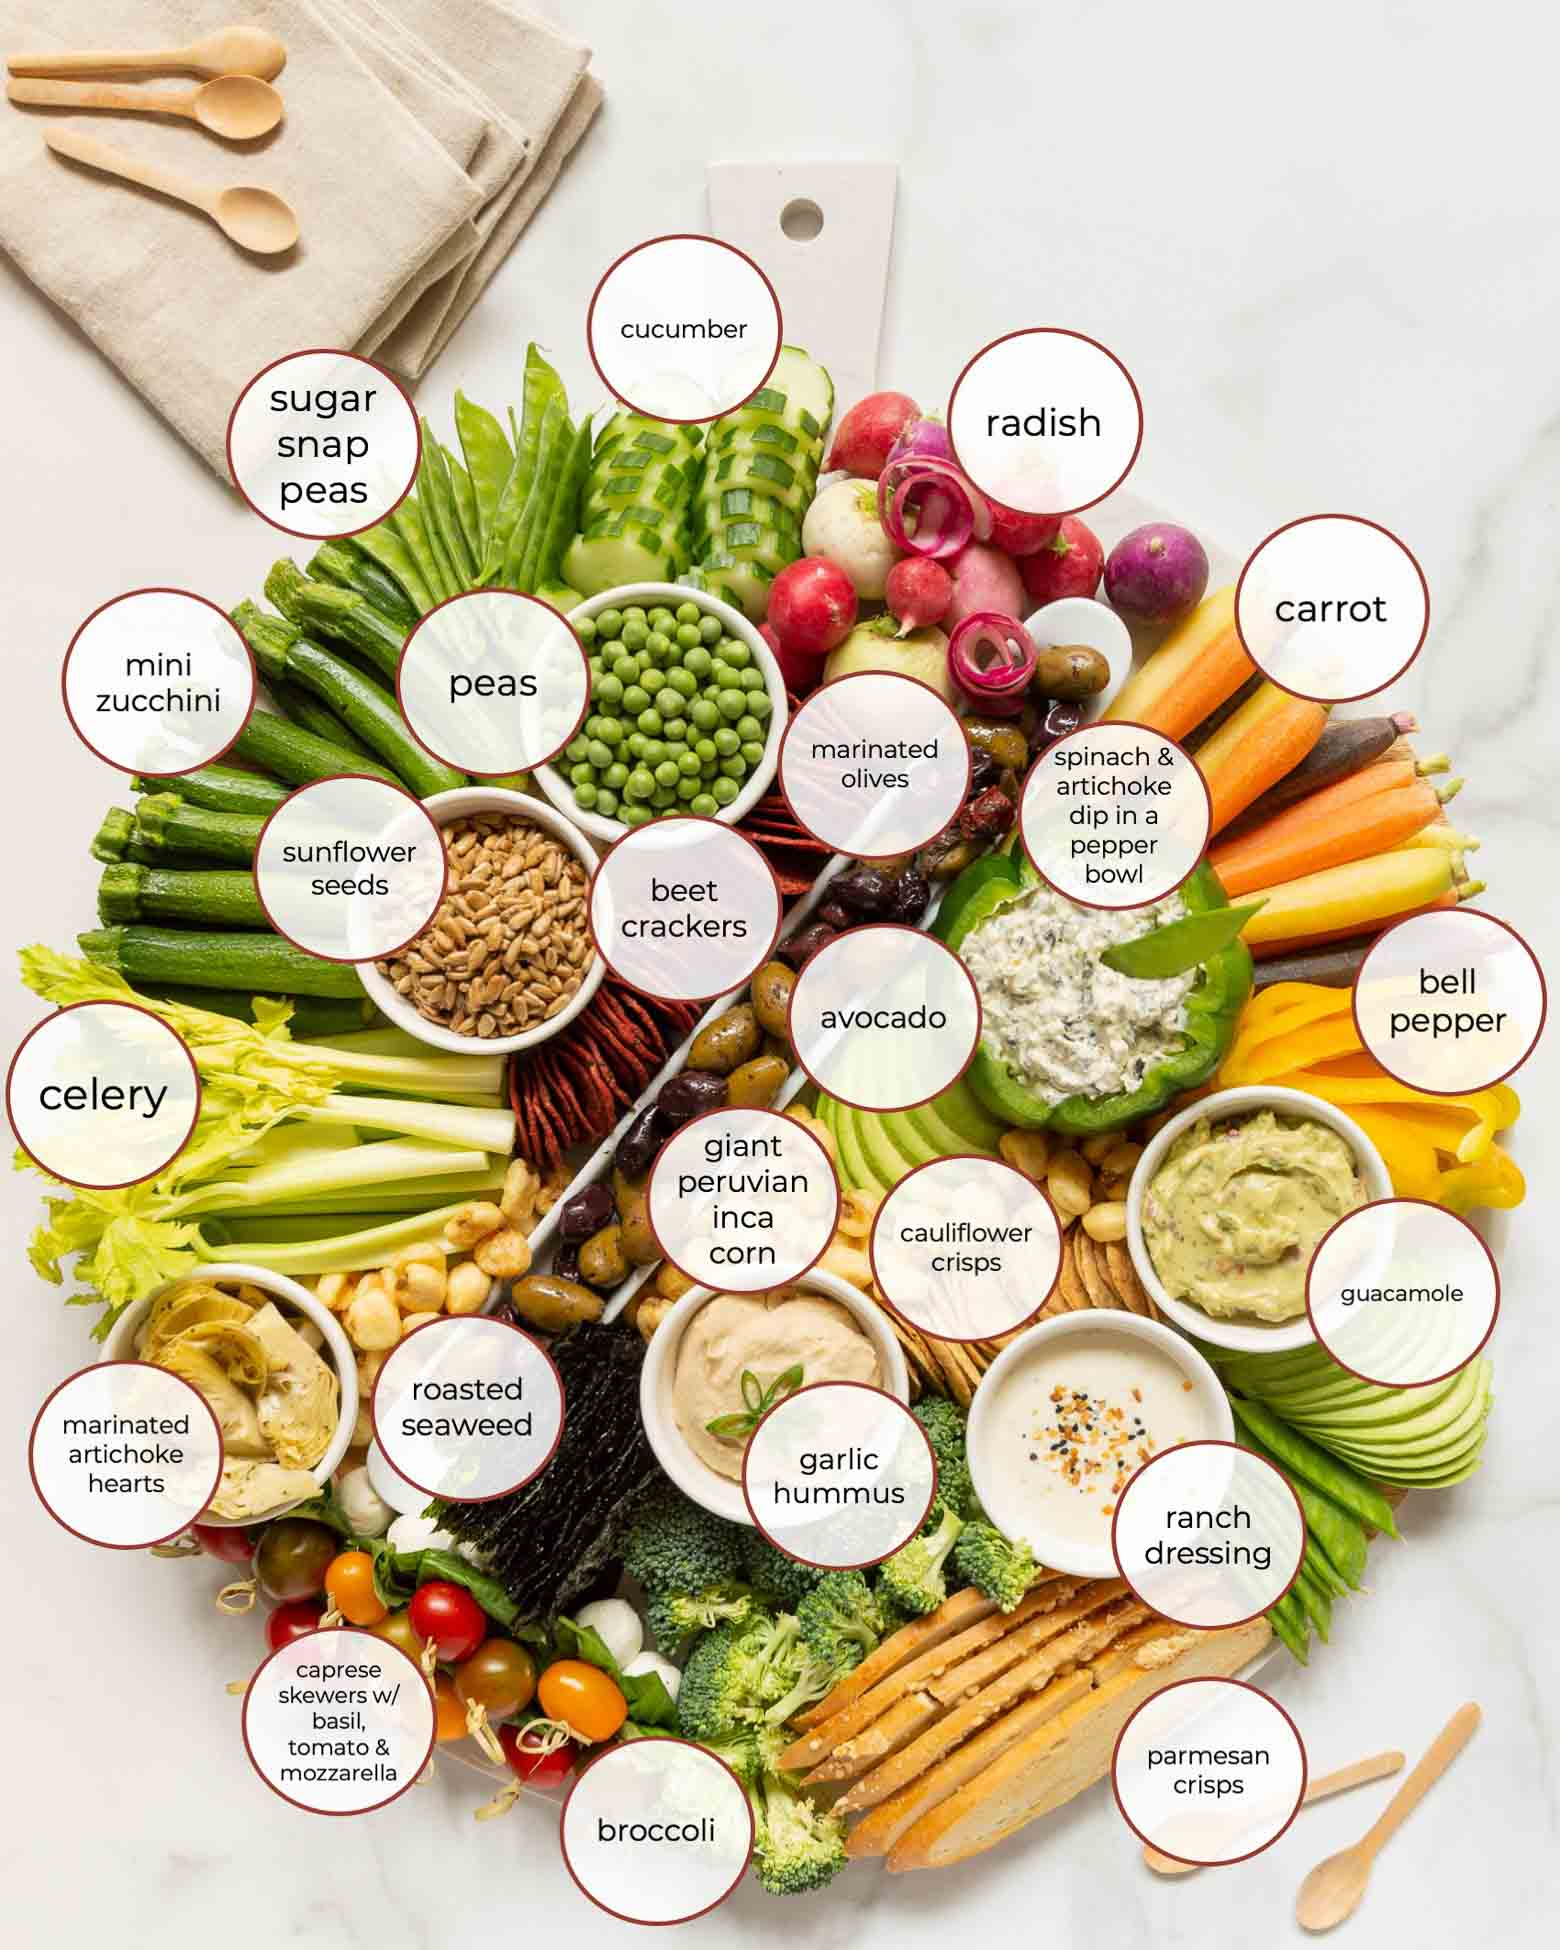 Crudité Board or Veggie Board Party Platter -- Ideas for Bridal Shower Food and Baby Shower Food!